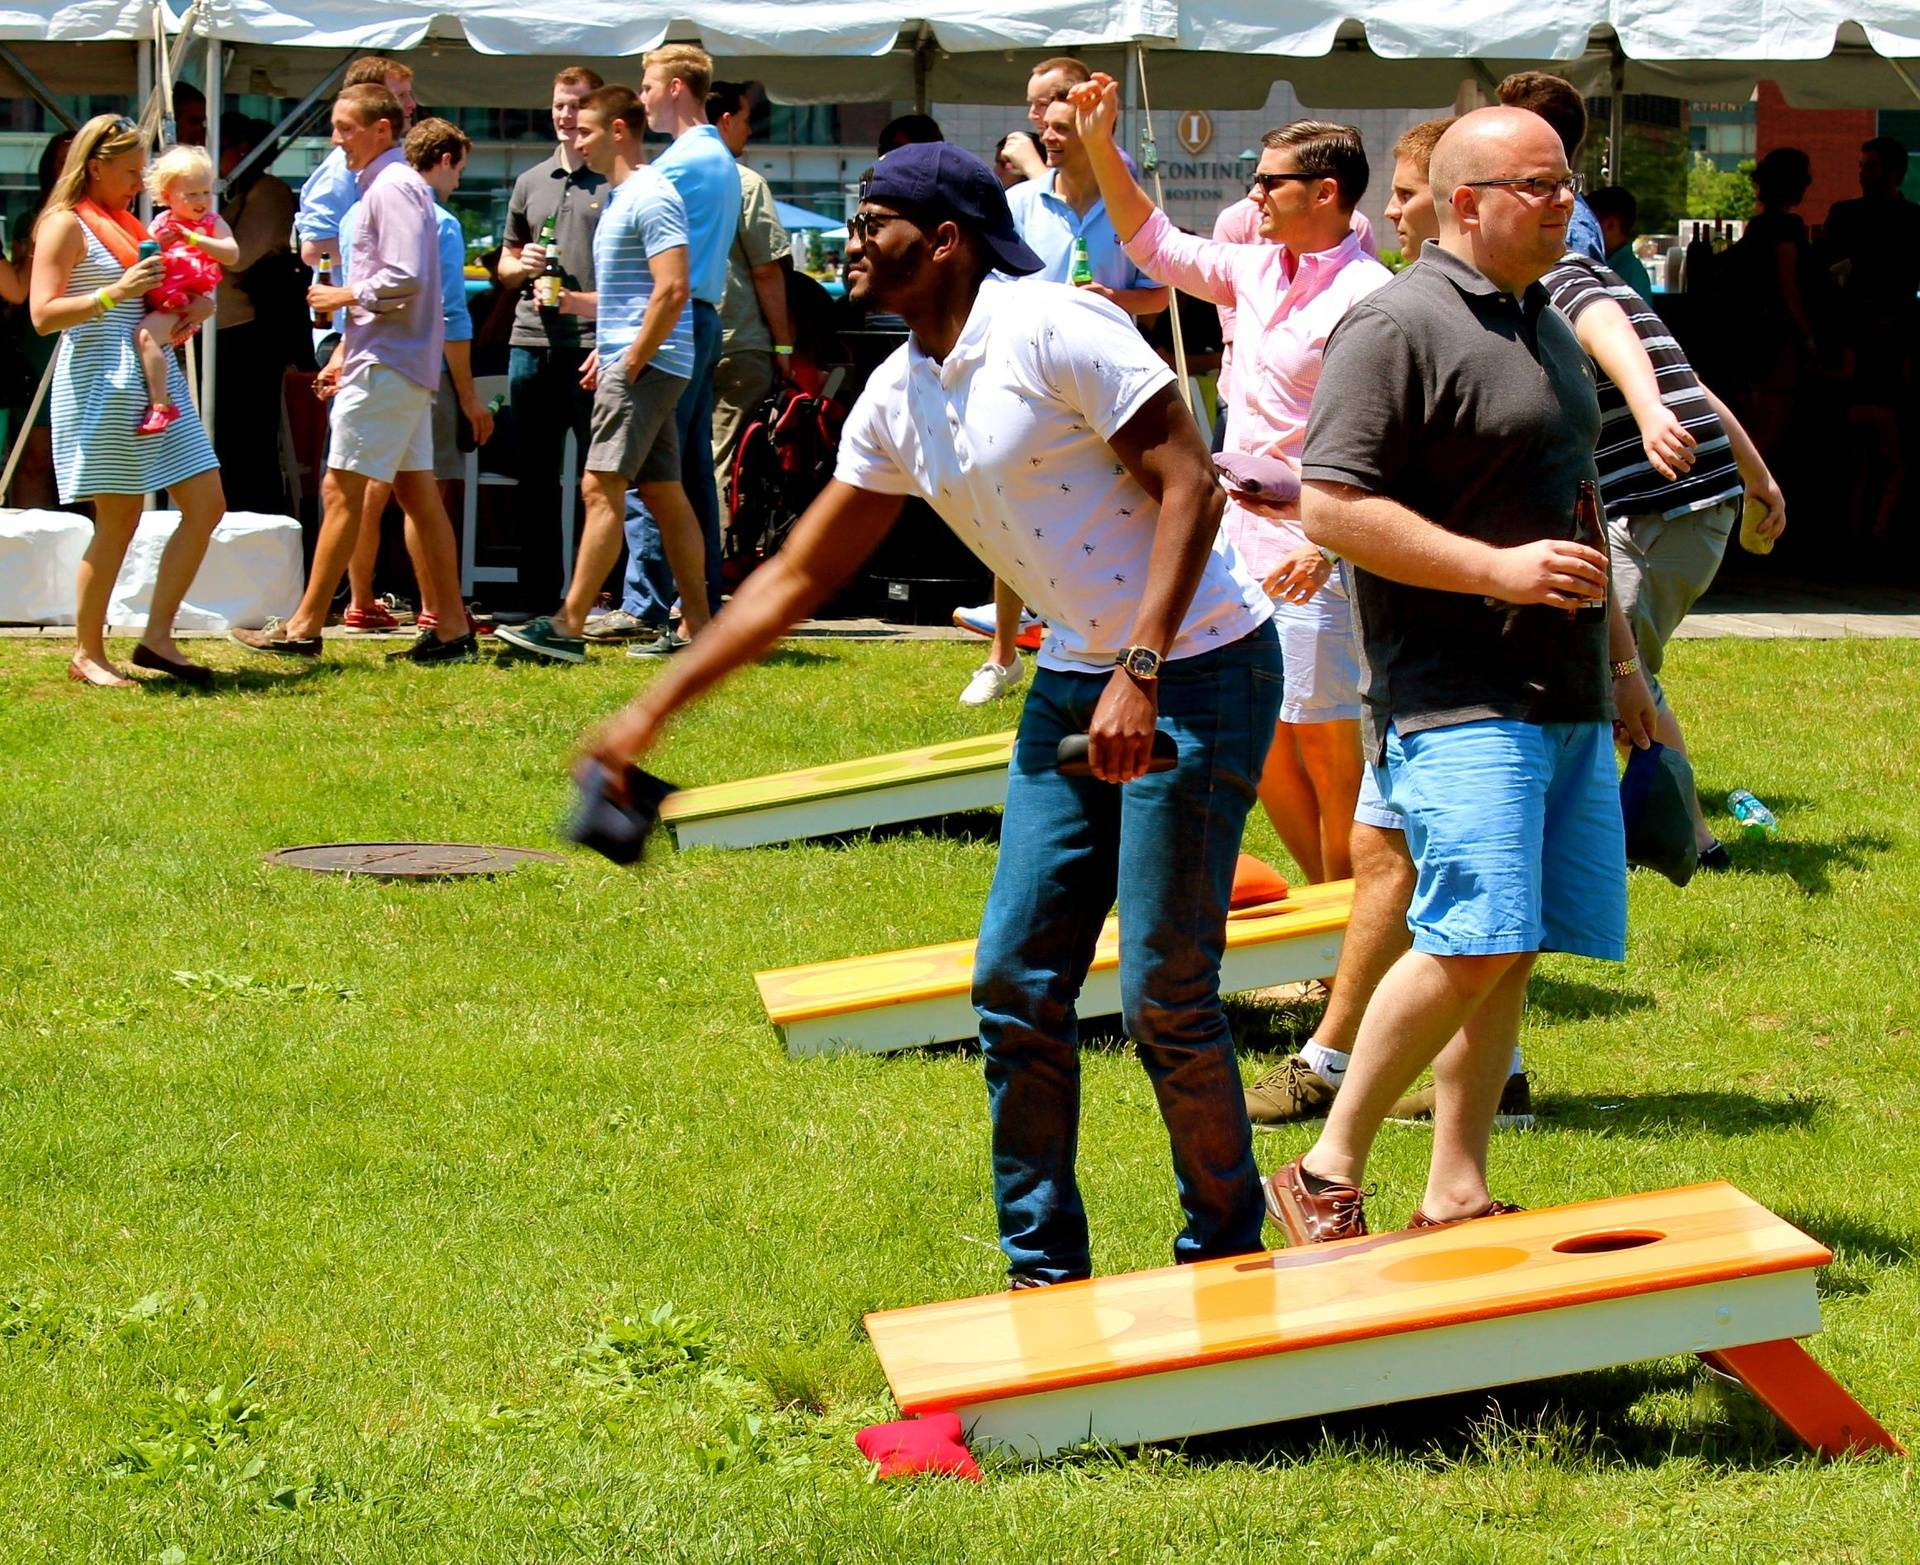 Corporate Cornhole Summer Outing